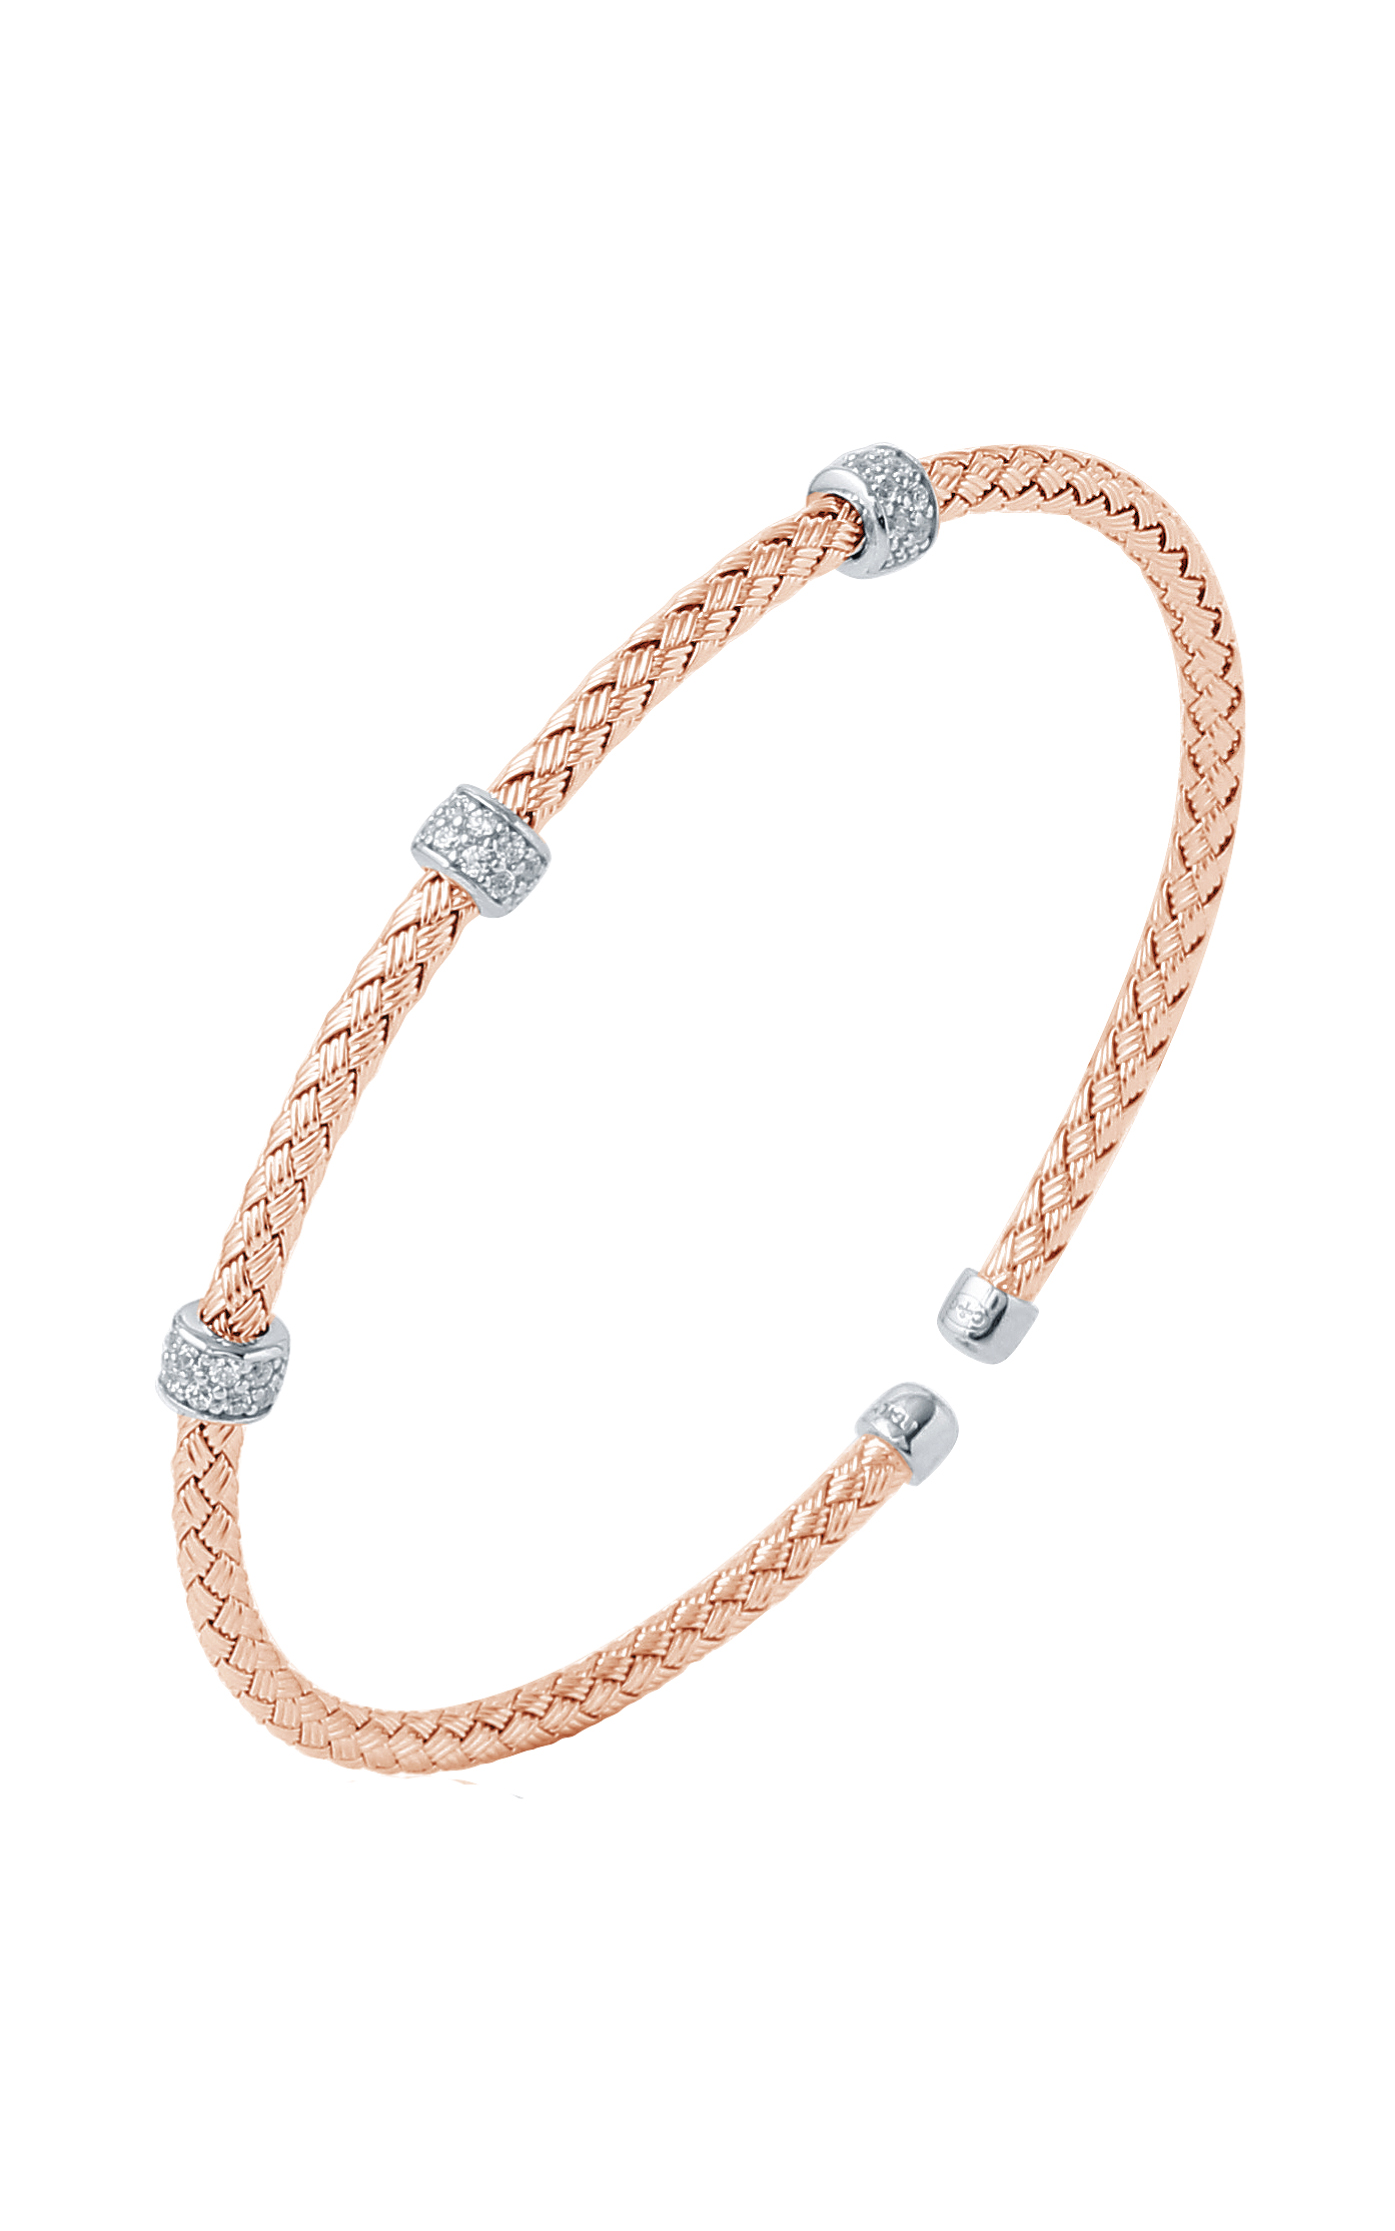 Charles Garnier Bracelet Paolo Collection MLC8109RWZ product image